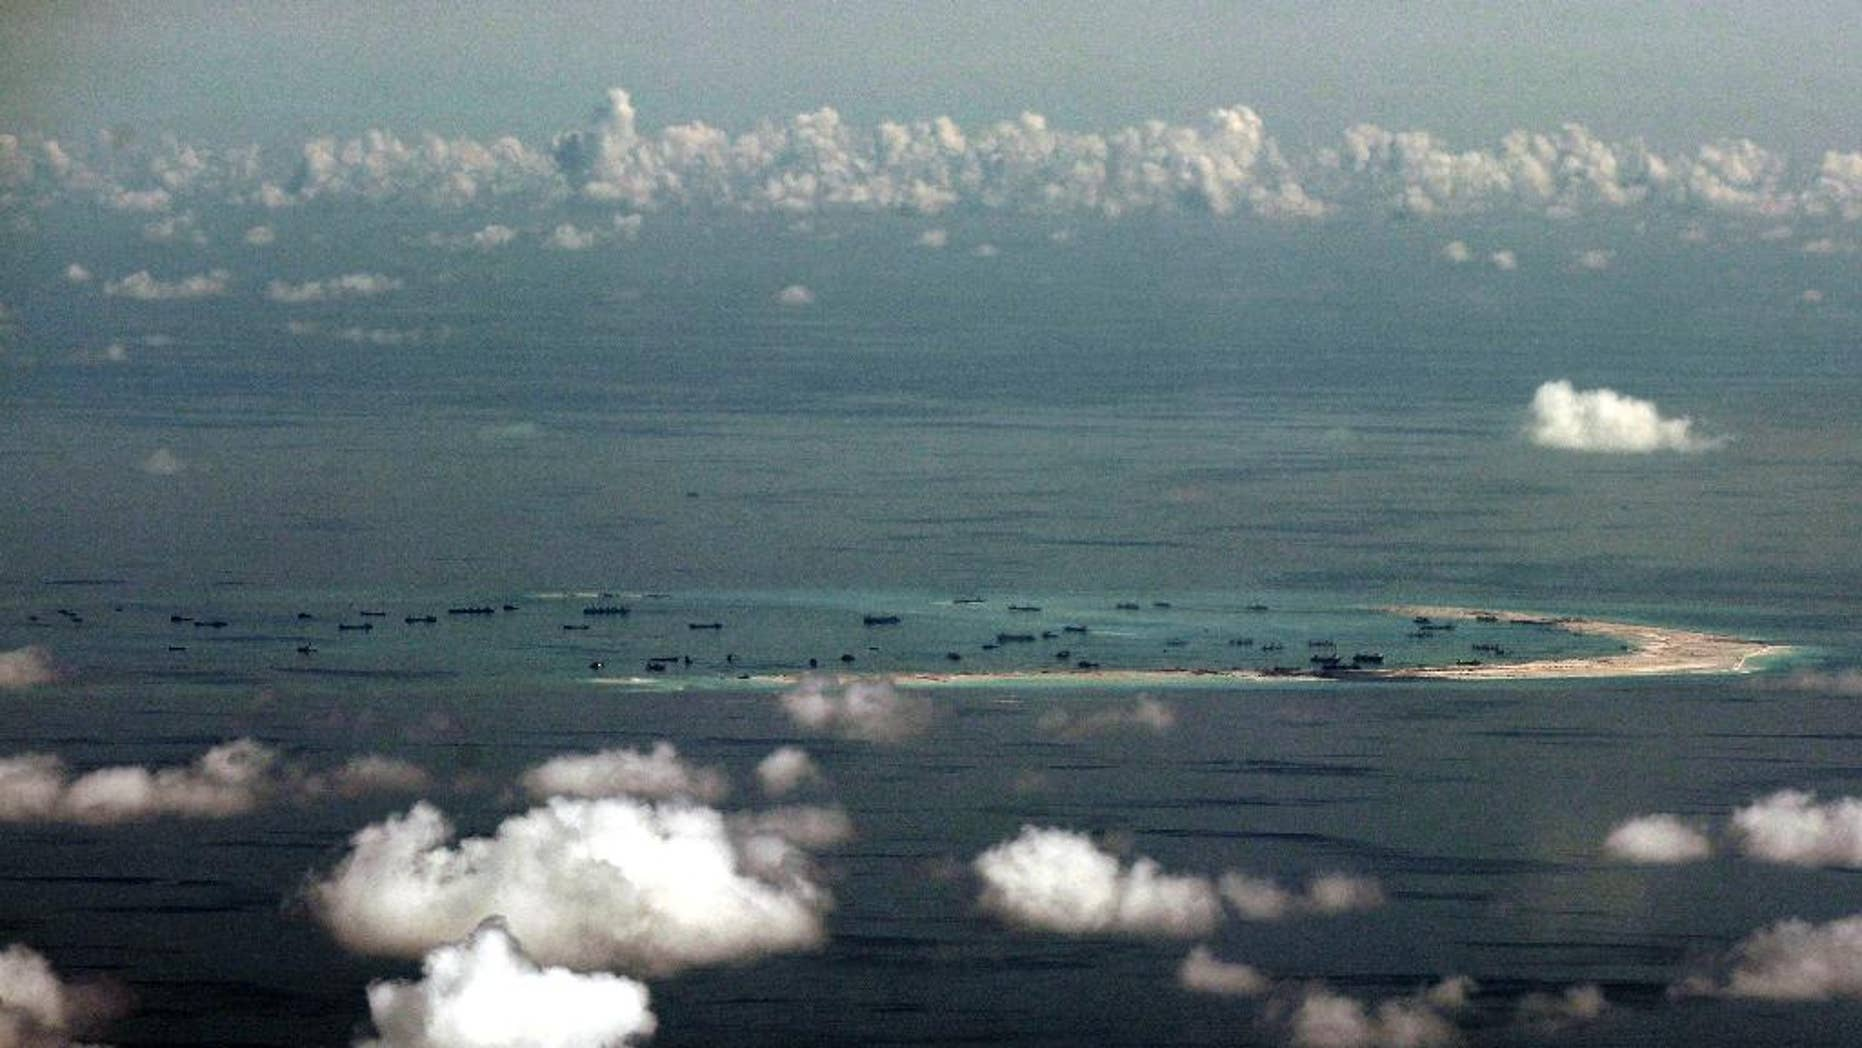 FILE -This Monday, May 11, 2015, file photo taken through a glass window of a military plane shows China's alleged on-going reclamation of Mischief Reef in the Spratly Islands in the South China Sea.  As China builds artificial islands in a vast resource-rich South China Sea and neighbors in Southeast Asia brace for possible conflict, Taiwan is cutting carbon emissions and offering a hospital for humanitarian aid on the sea's largest natural islet to seek international approval for easing tension. (Ritchie B. Tongo/Pool Photo via AP)